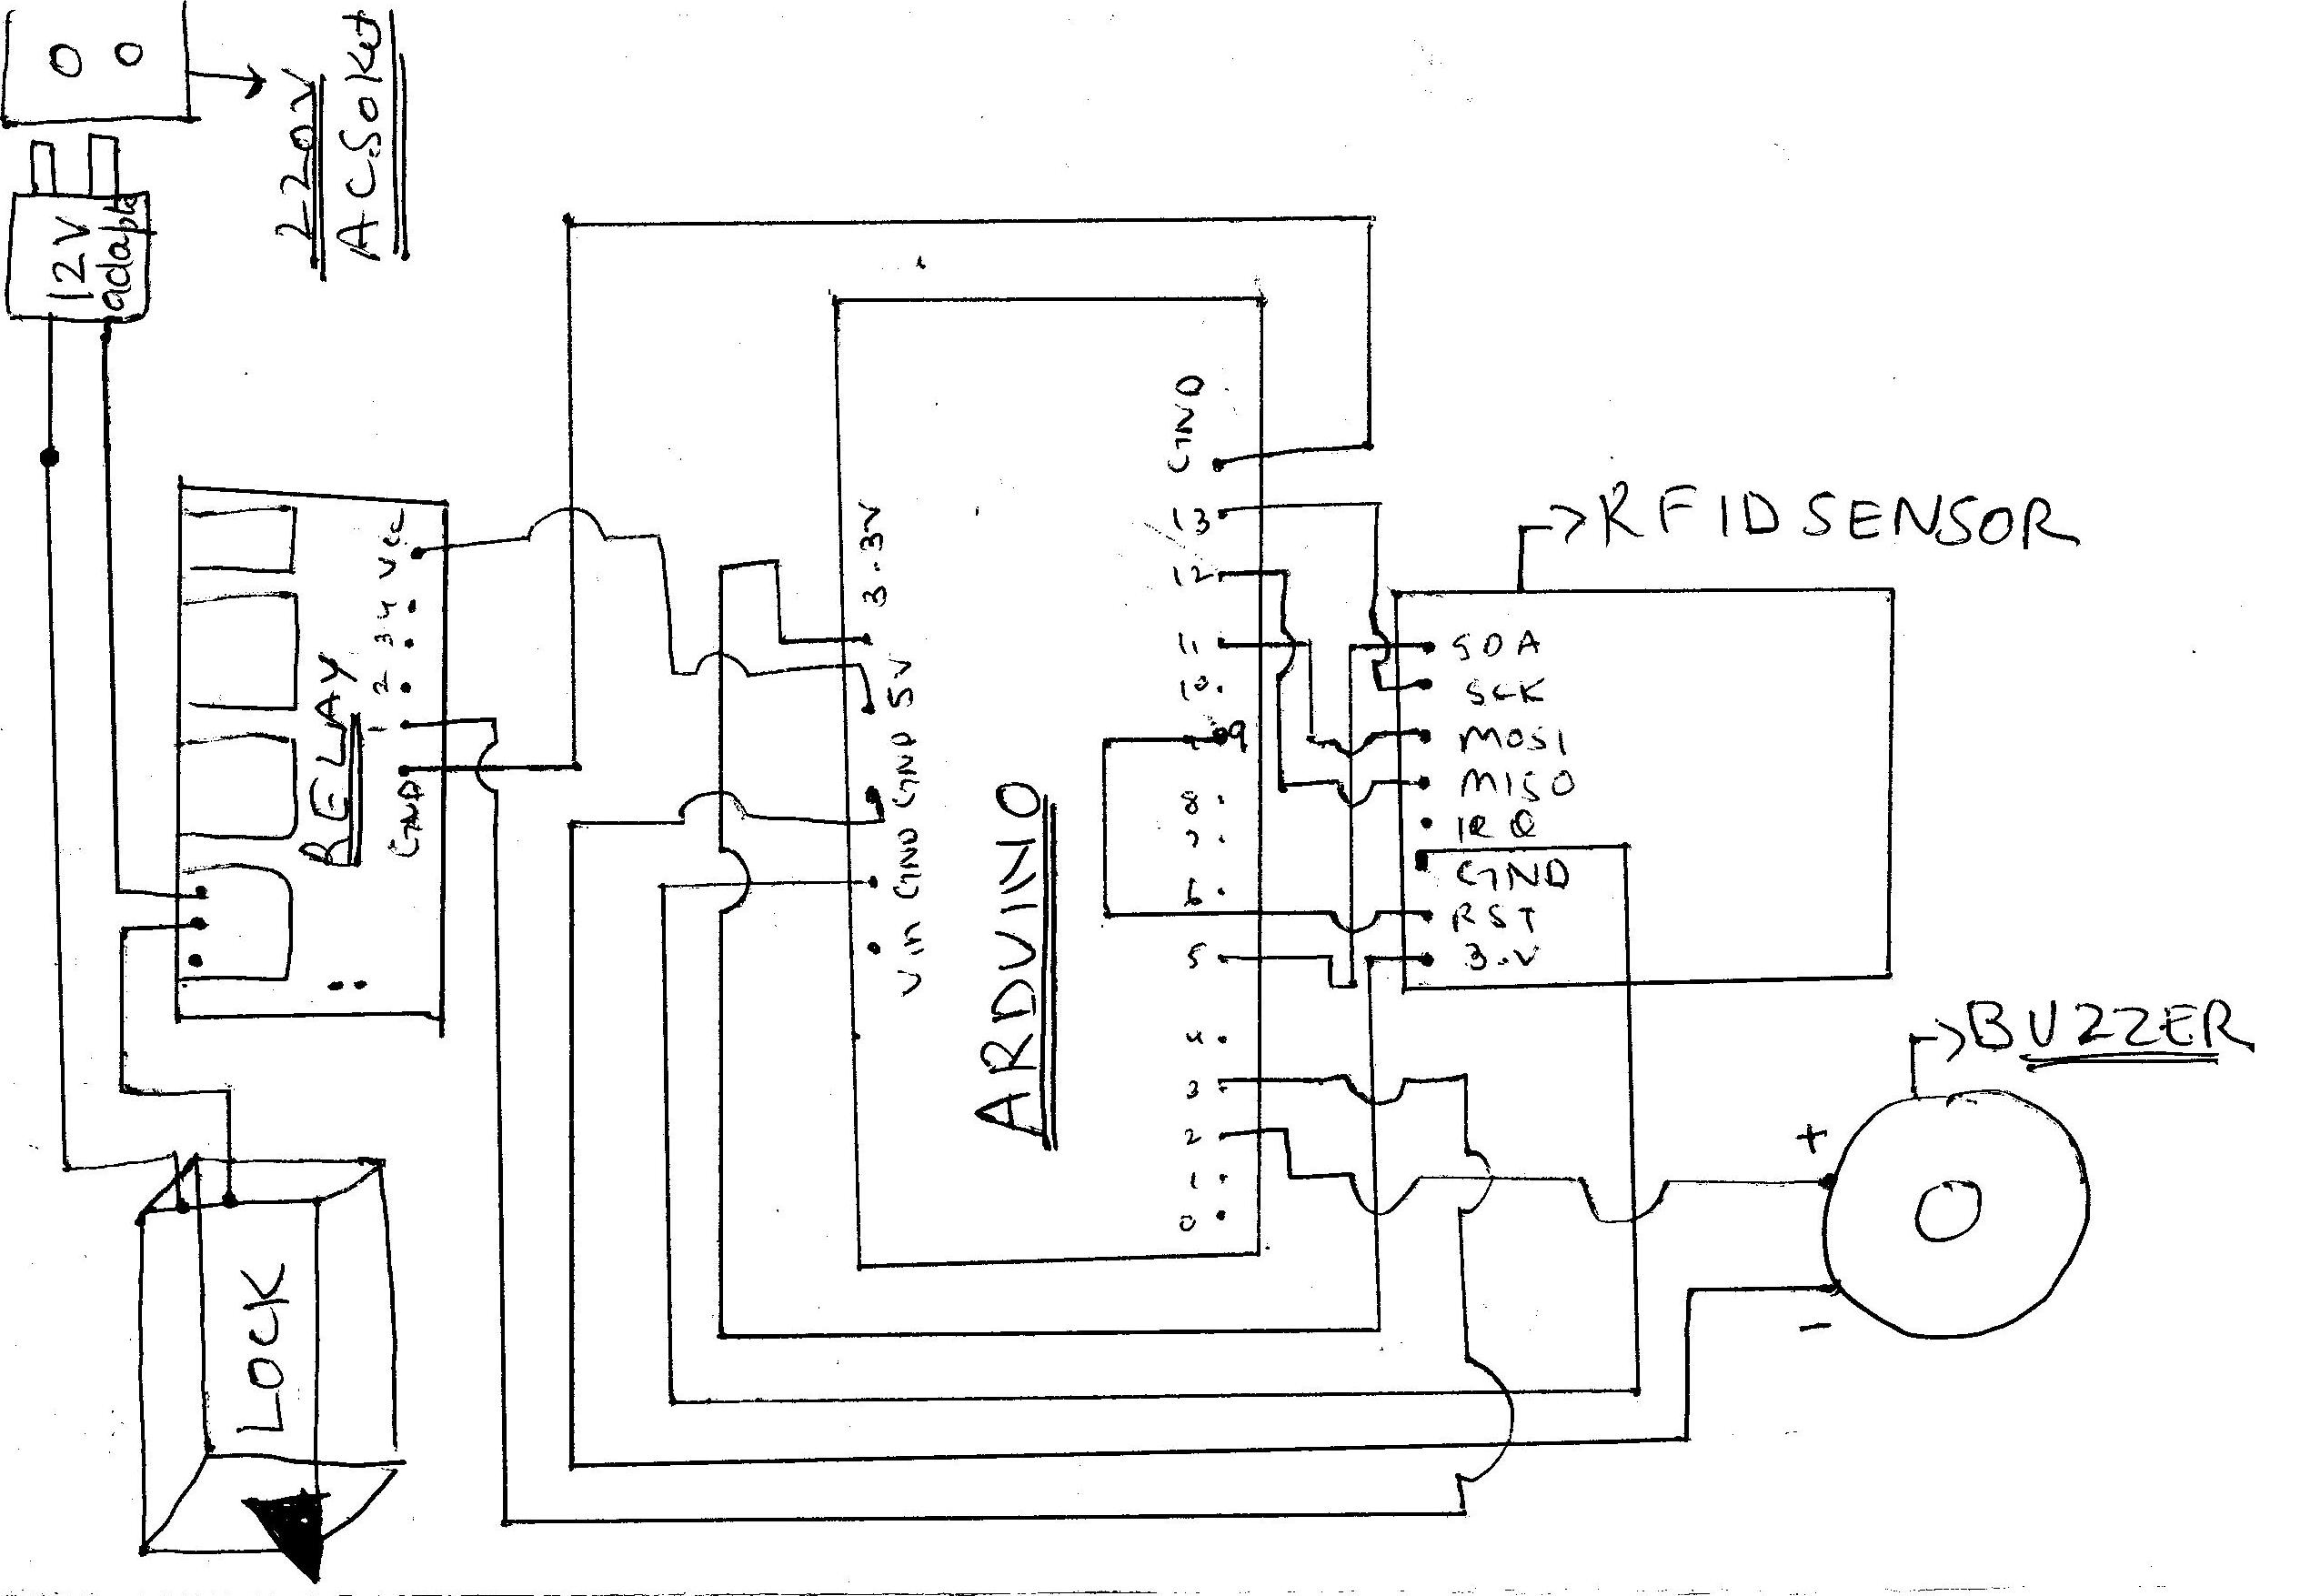 Code and Circuit Diagram for Smart Locking Door System